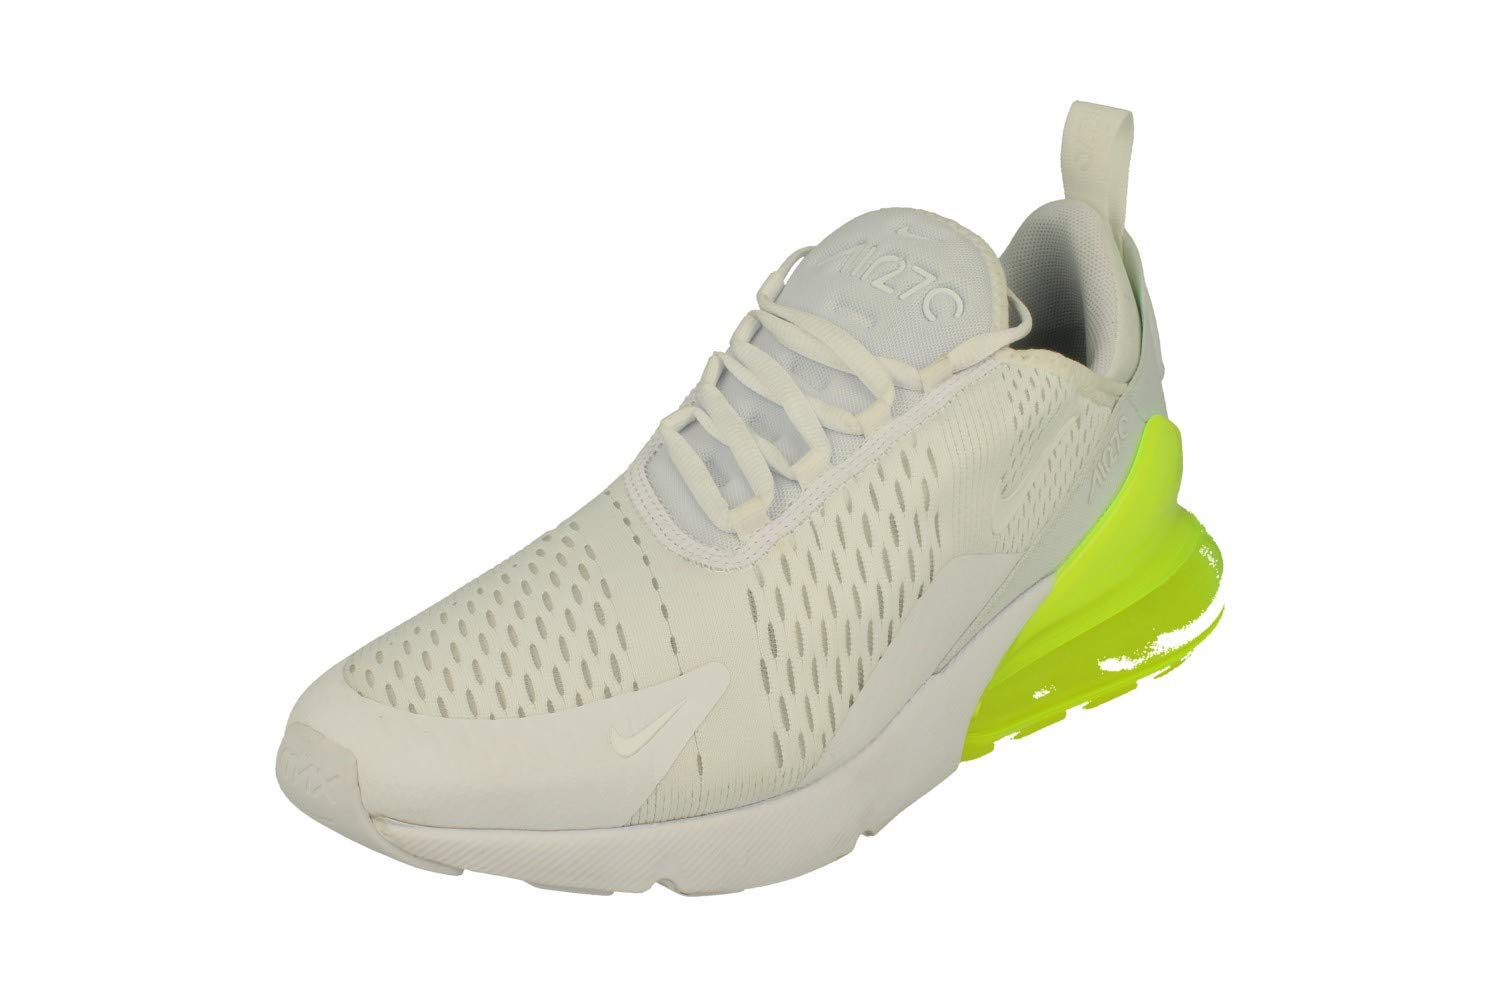 new arrivals 02af5 8fafd Galleon - NIKE Air Max 270 Mens Running Trainers AH8050 Sneakers Shoes (UK  9 US 10 EU 44, White Volt 104)